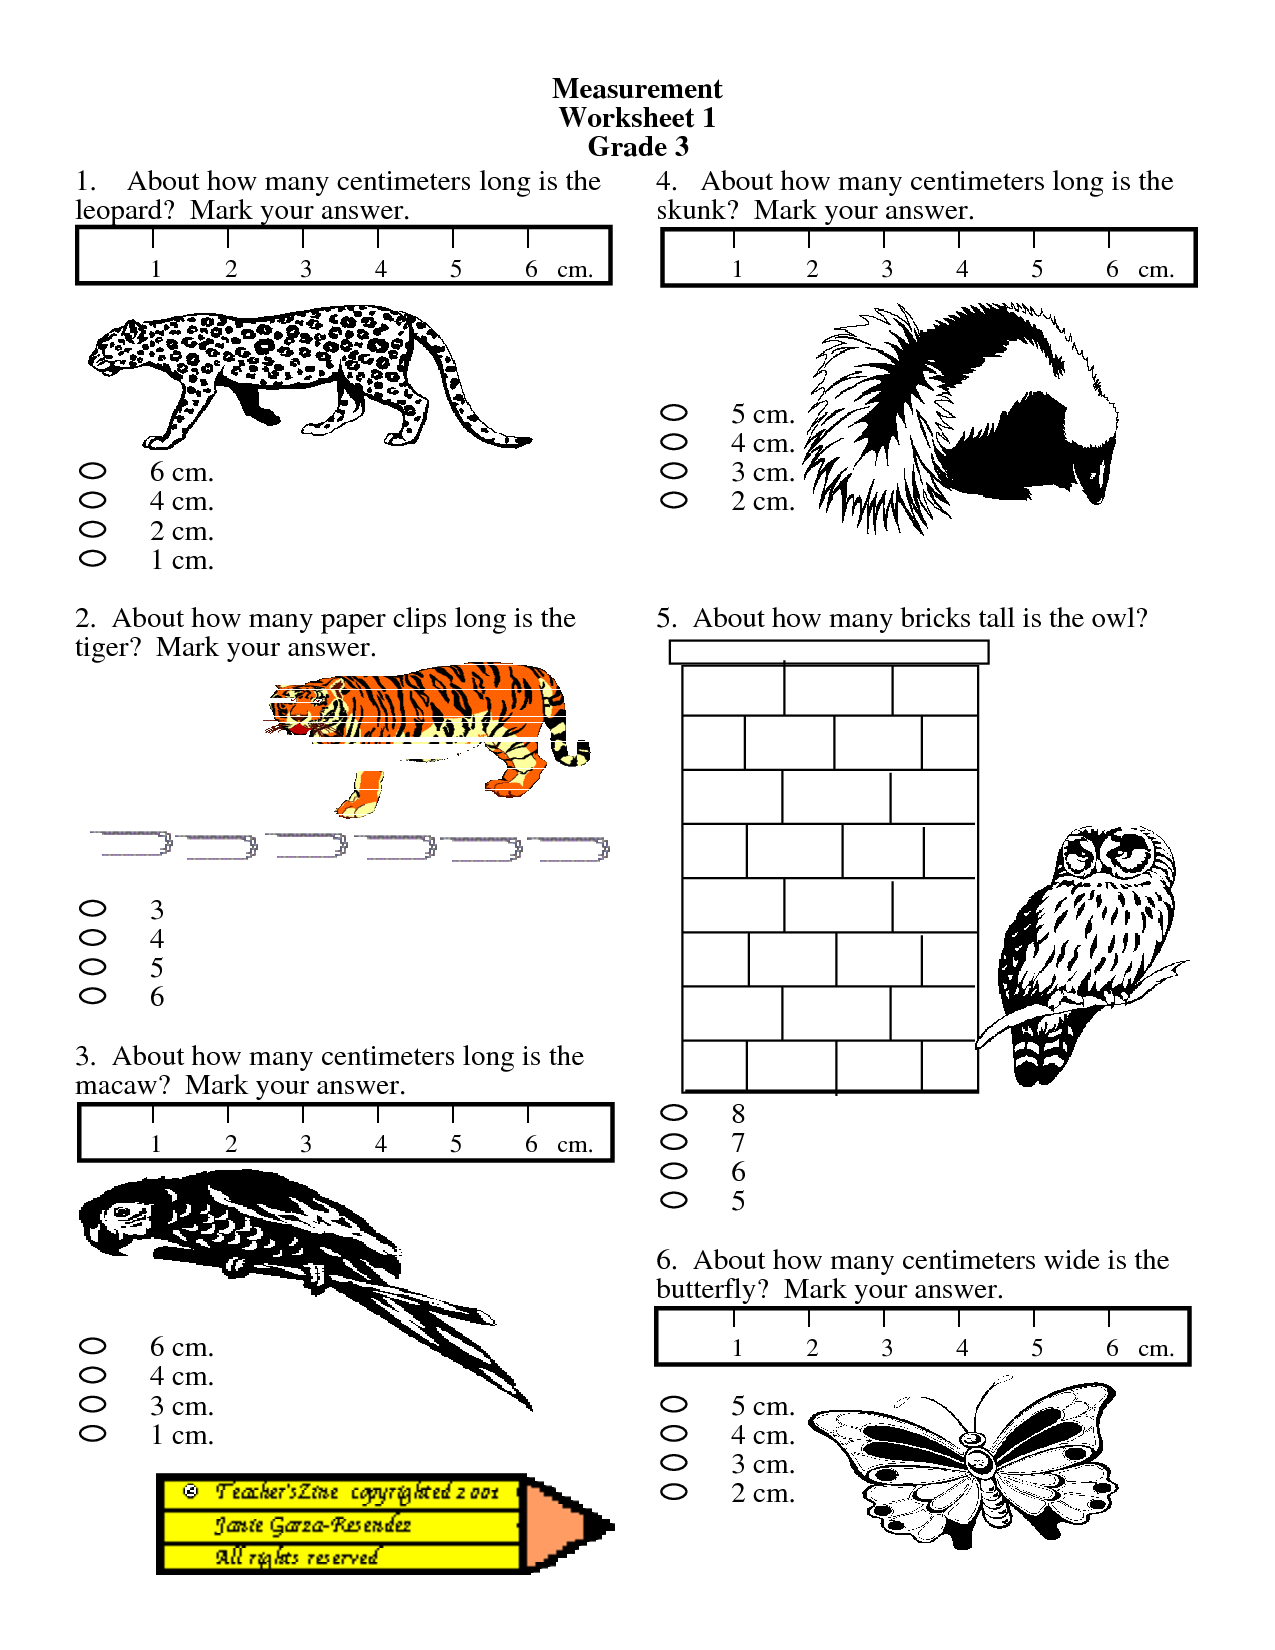 math worksheet : 1000 images about measurement on pinterest  measurement  : Math Measurement Worksheets